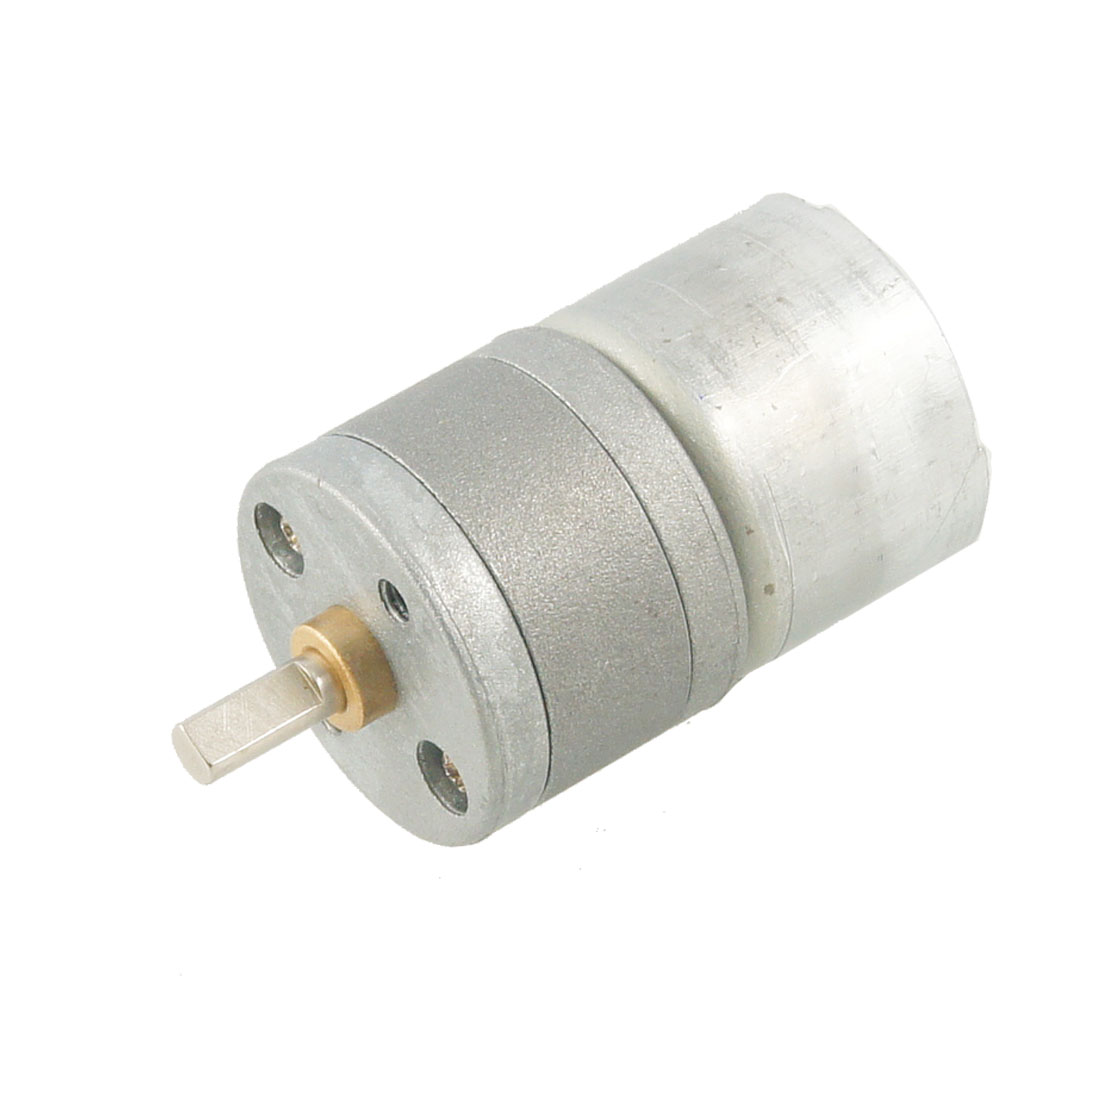 25mm Diameter Gearbox 25GA 150RPM 50MA 3V DC Geared Motor